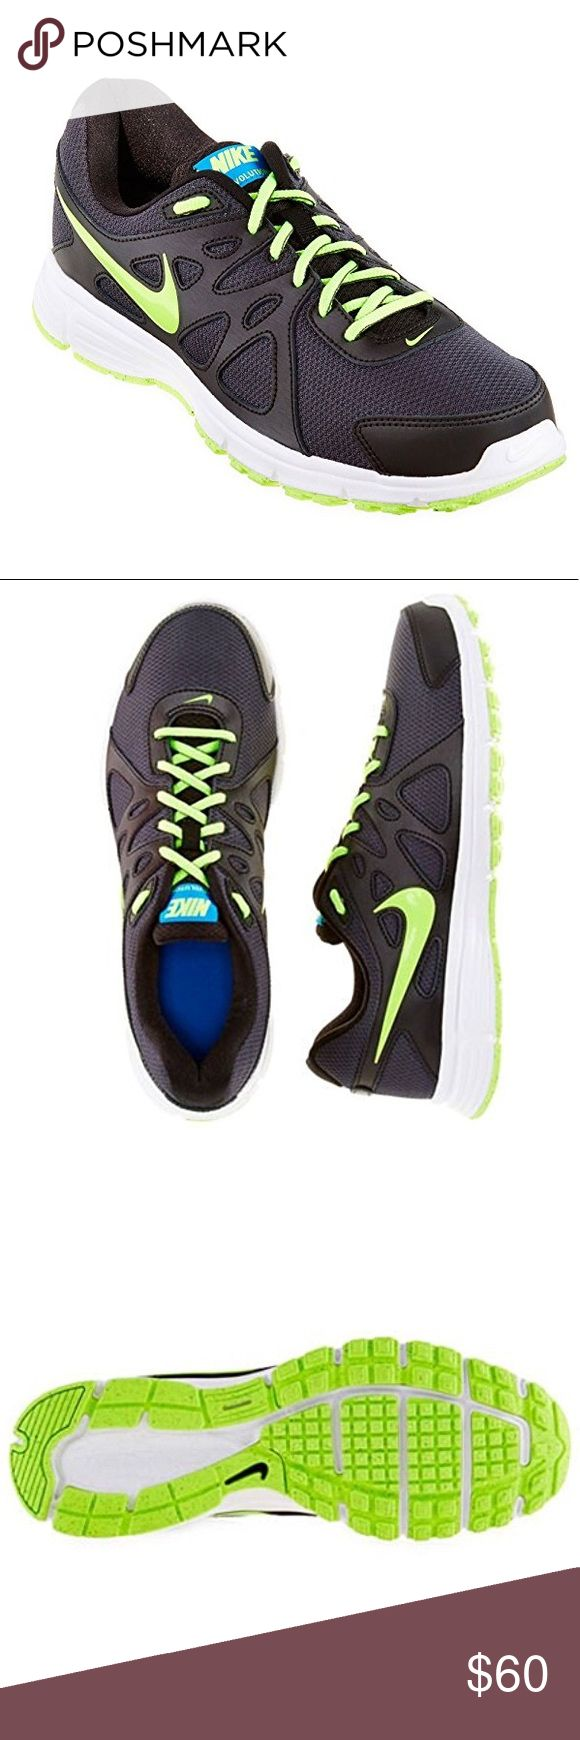 🆕Nike Revolution 2 Men's Running Shoes (13 D(M) These Nike sneakers for kids are eye-catching shoes with a synthetic leather upper. The shoes have rubber outsoles and EVA insole, which provide good shock absorbtion.Features Nike sneakers for Men Perforated synthetic leather upper Rubber outsole EVA insole Nike Shoes Sneakers